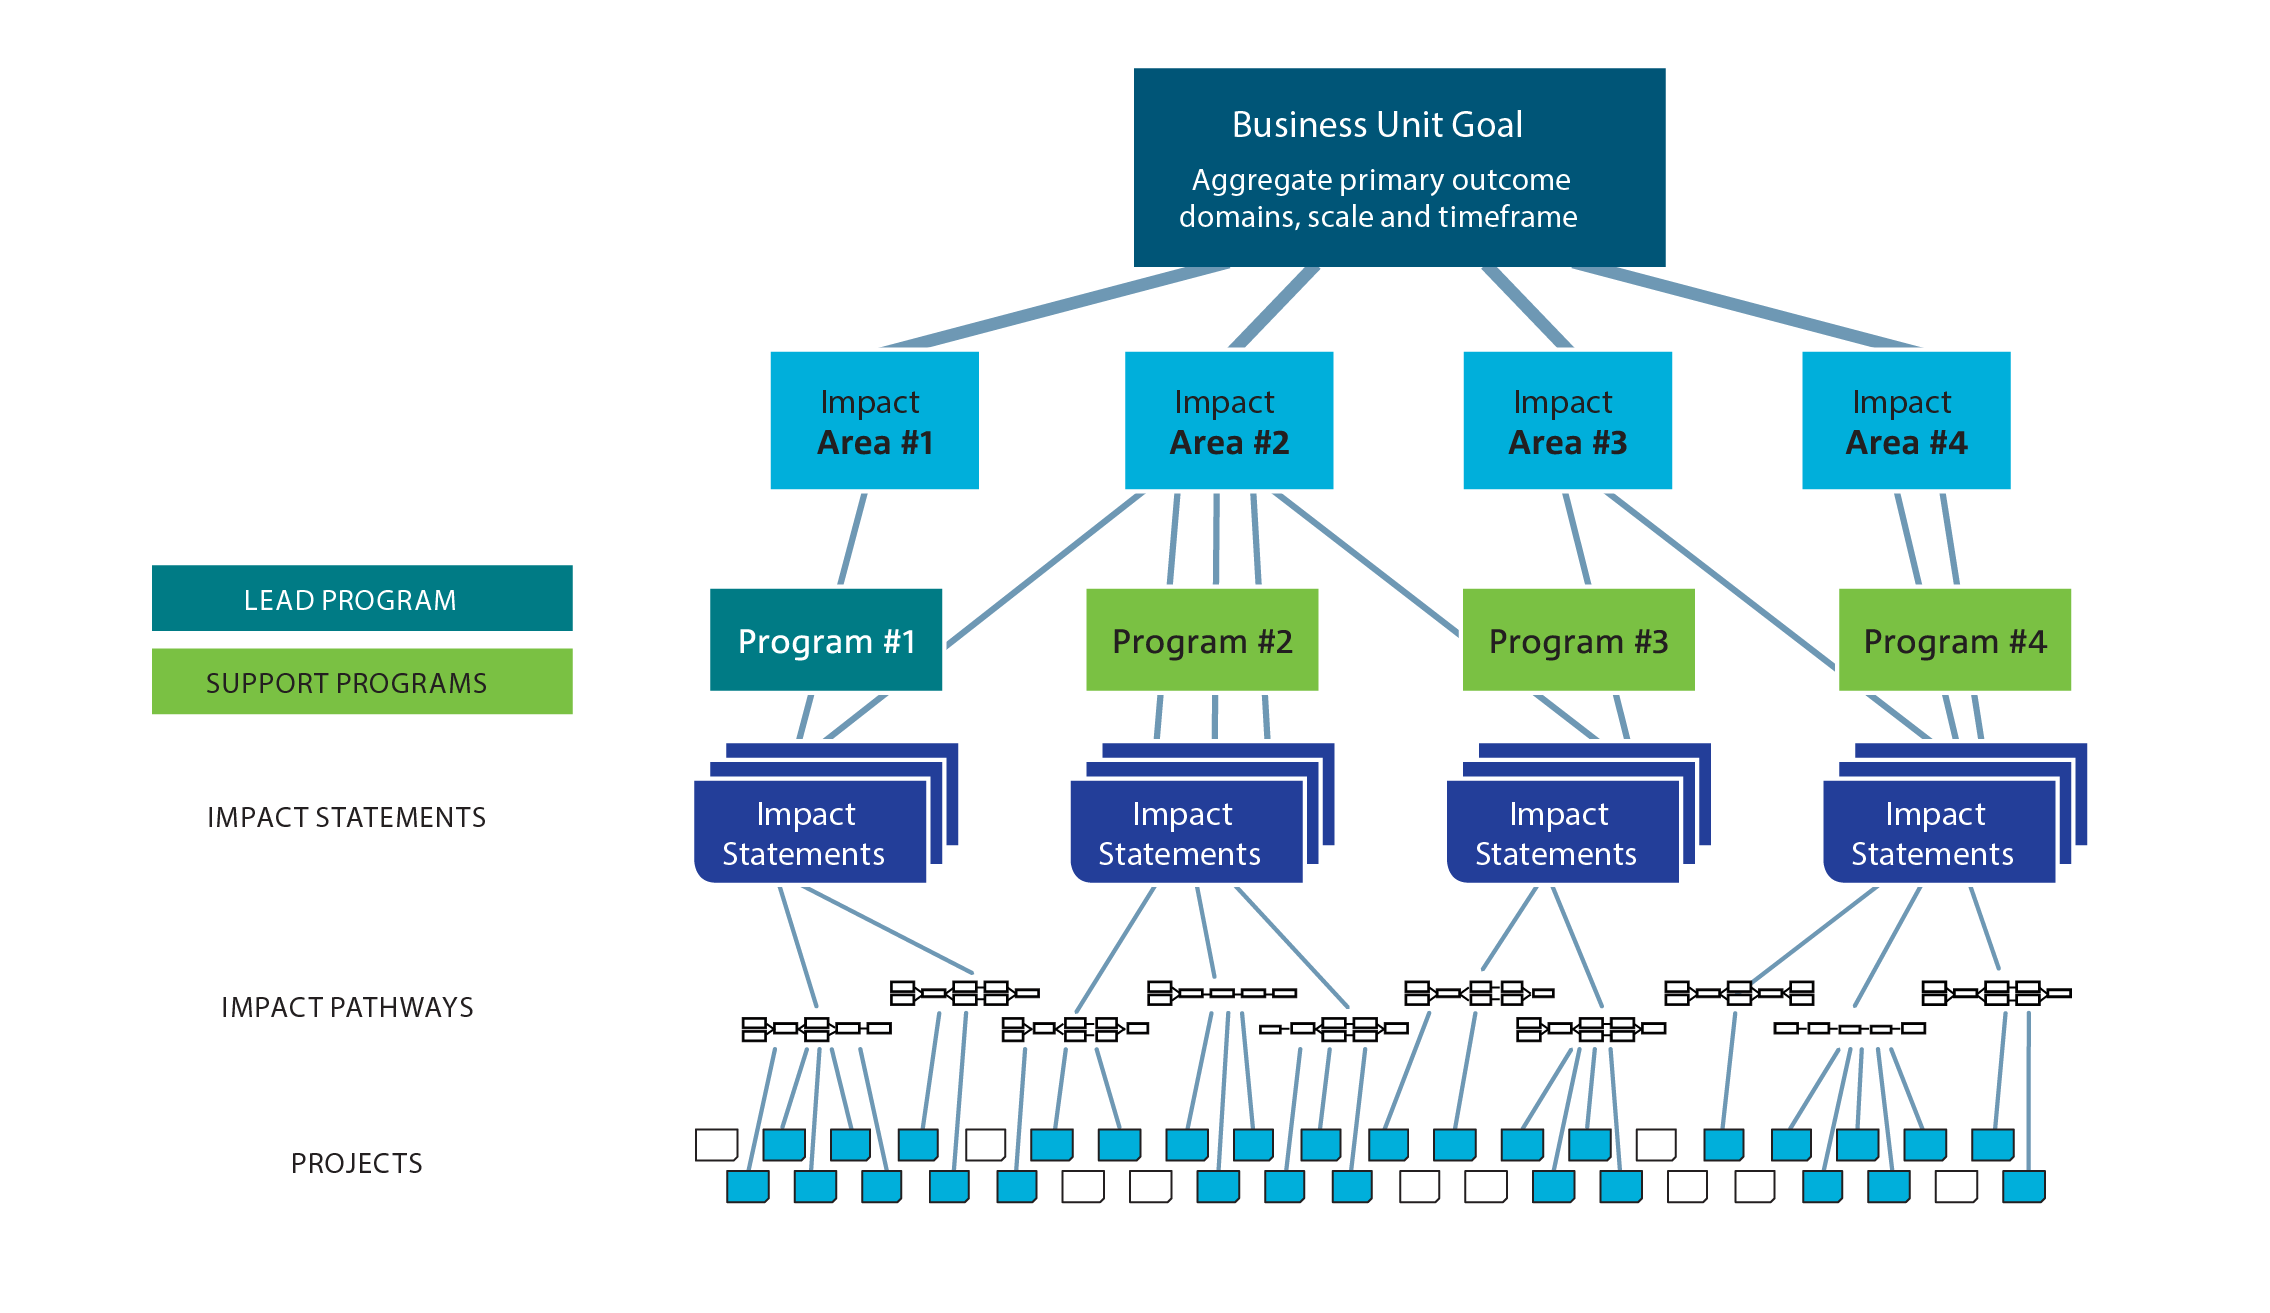 Diagram shows a flow chart from Flagship Goal (aggregate primary outcome domains, scale and timeframe) to Impact Areas to Programs to Impact statements to Impact Pathway Planning to Projects.